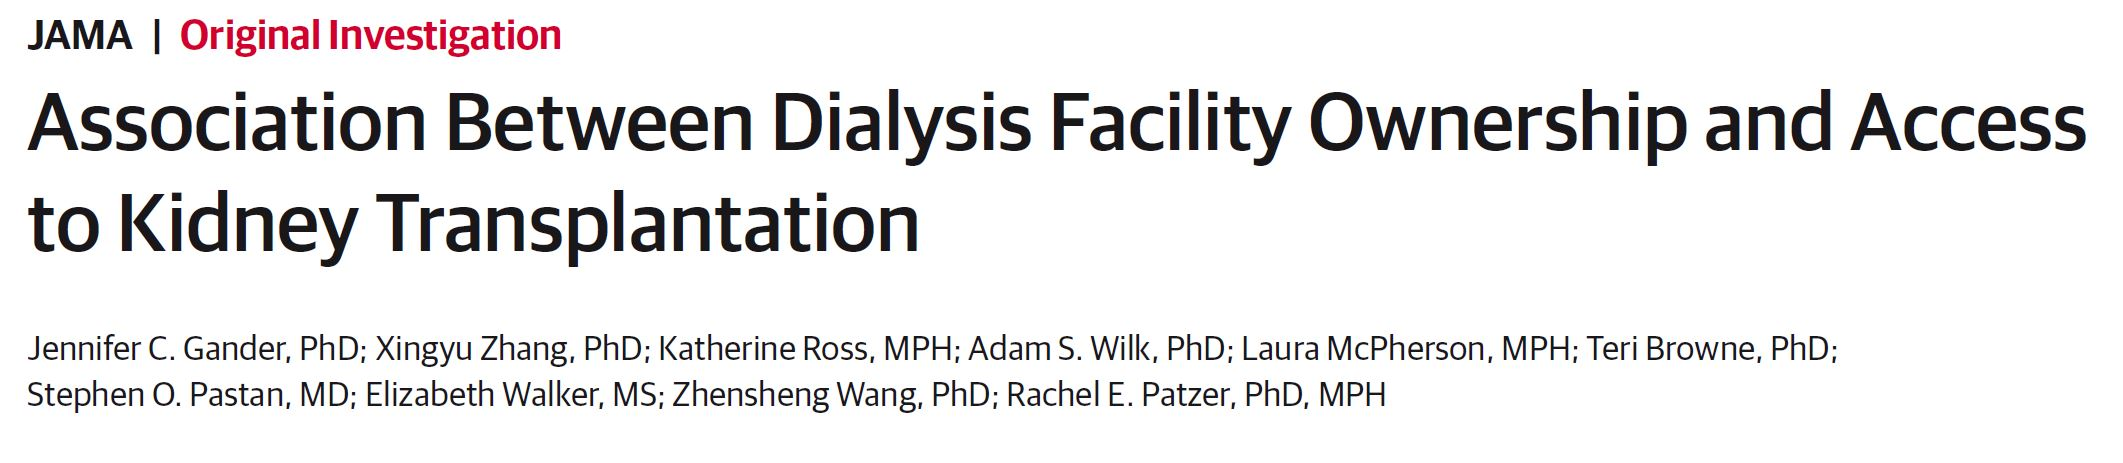 Association Between Dialysis Facility Ownership and Access to Kidney Transplantation